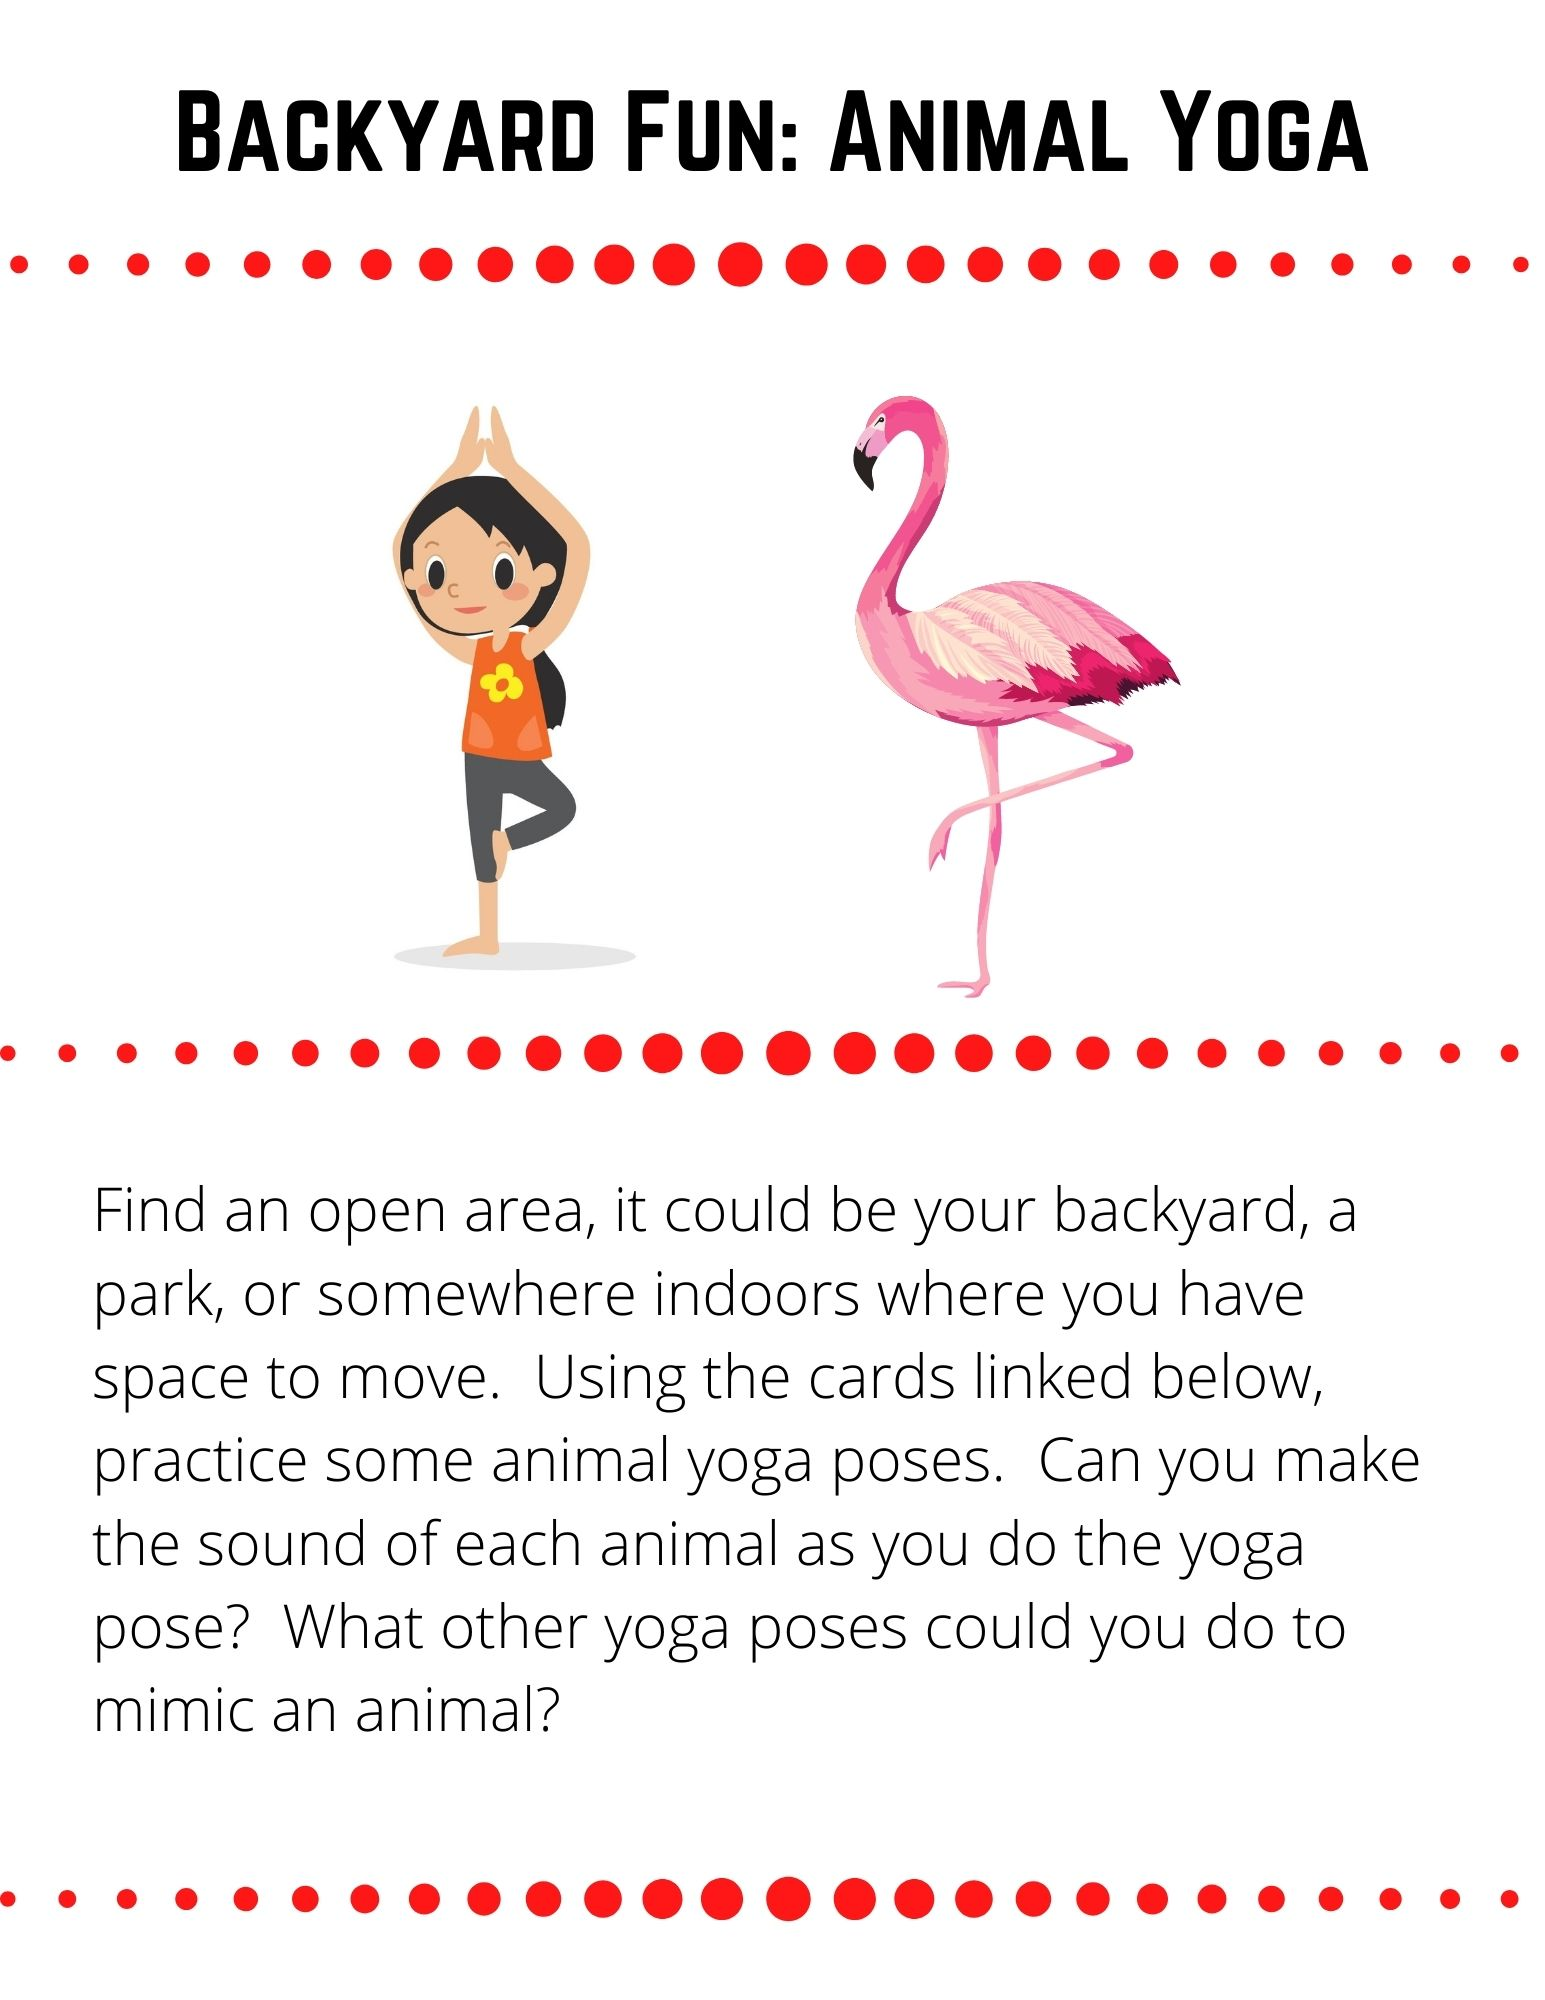 Find an open area, it could be your backyard, a park, or somewhere indoors where you have space to move.  Using the cards linked below, practice some animal yoga poses.  Can you make the sound of each animal as you do the yoga pose?  What other yoga poses could you do to mimic an animal?